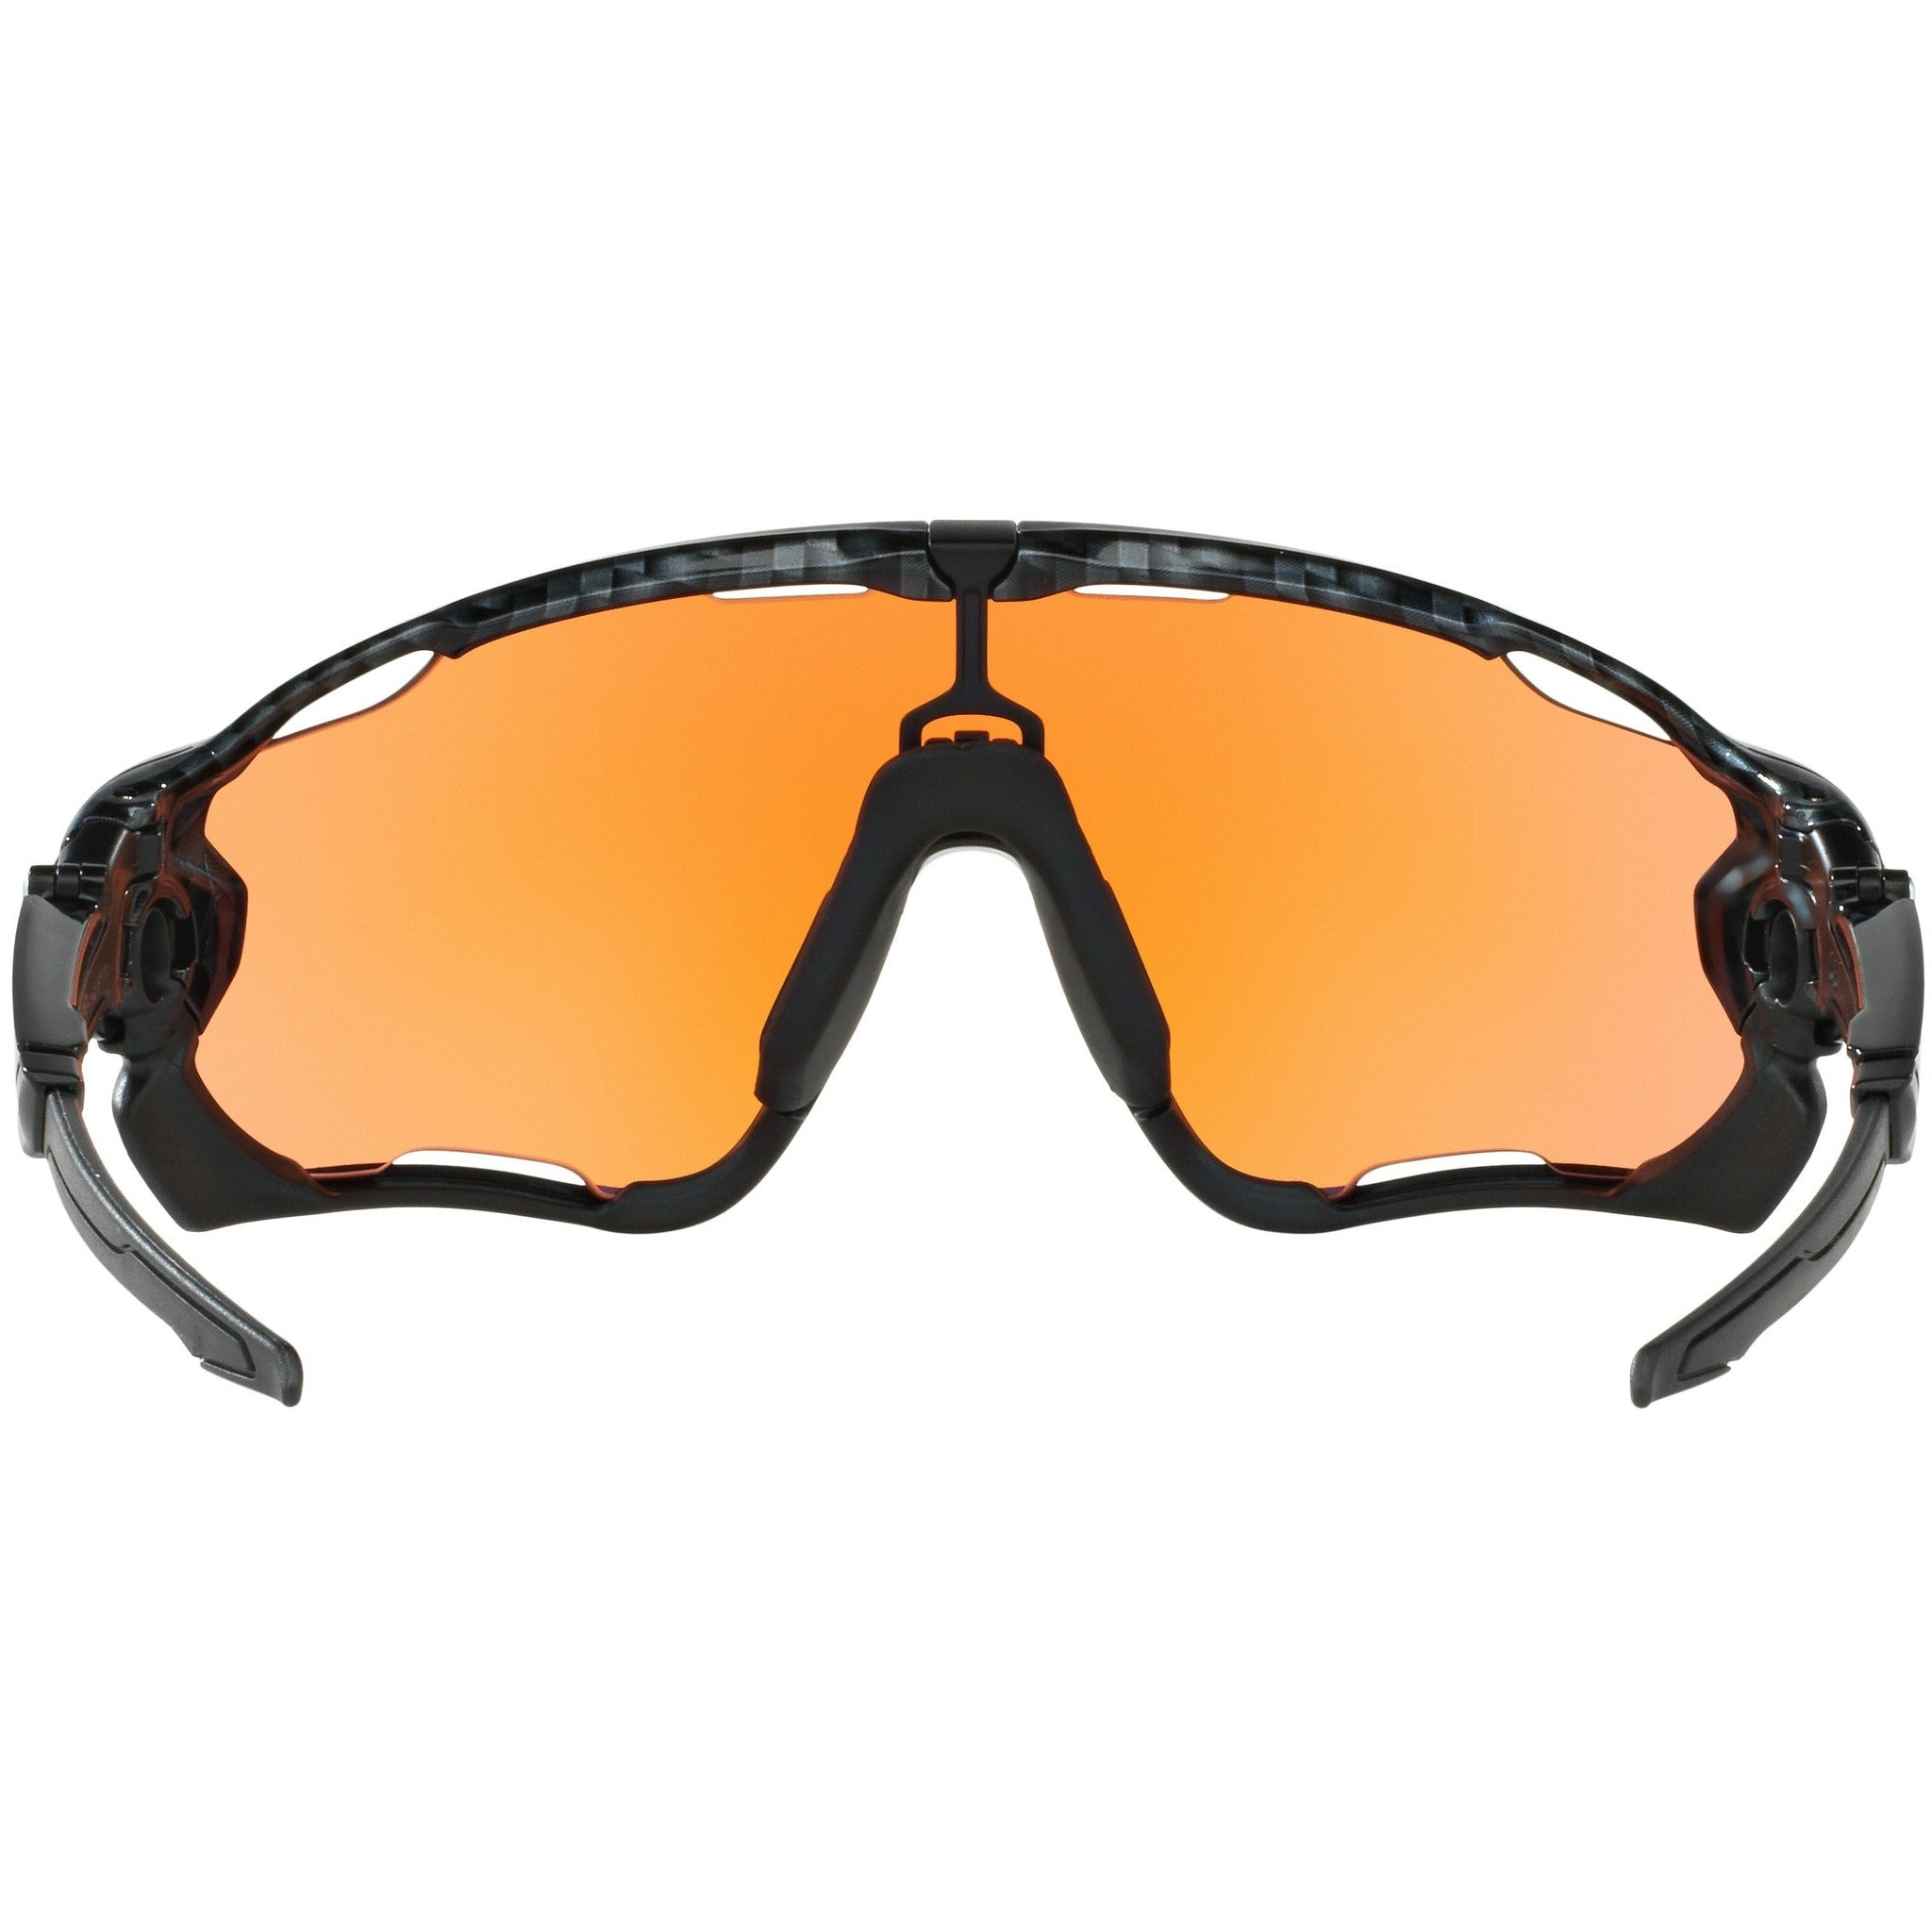 Oakley Jawbreaker Cycling Sunglasses - 88 Gear